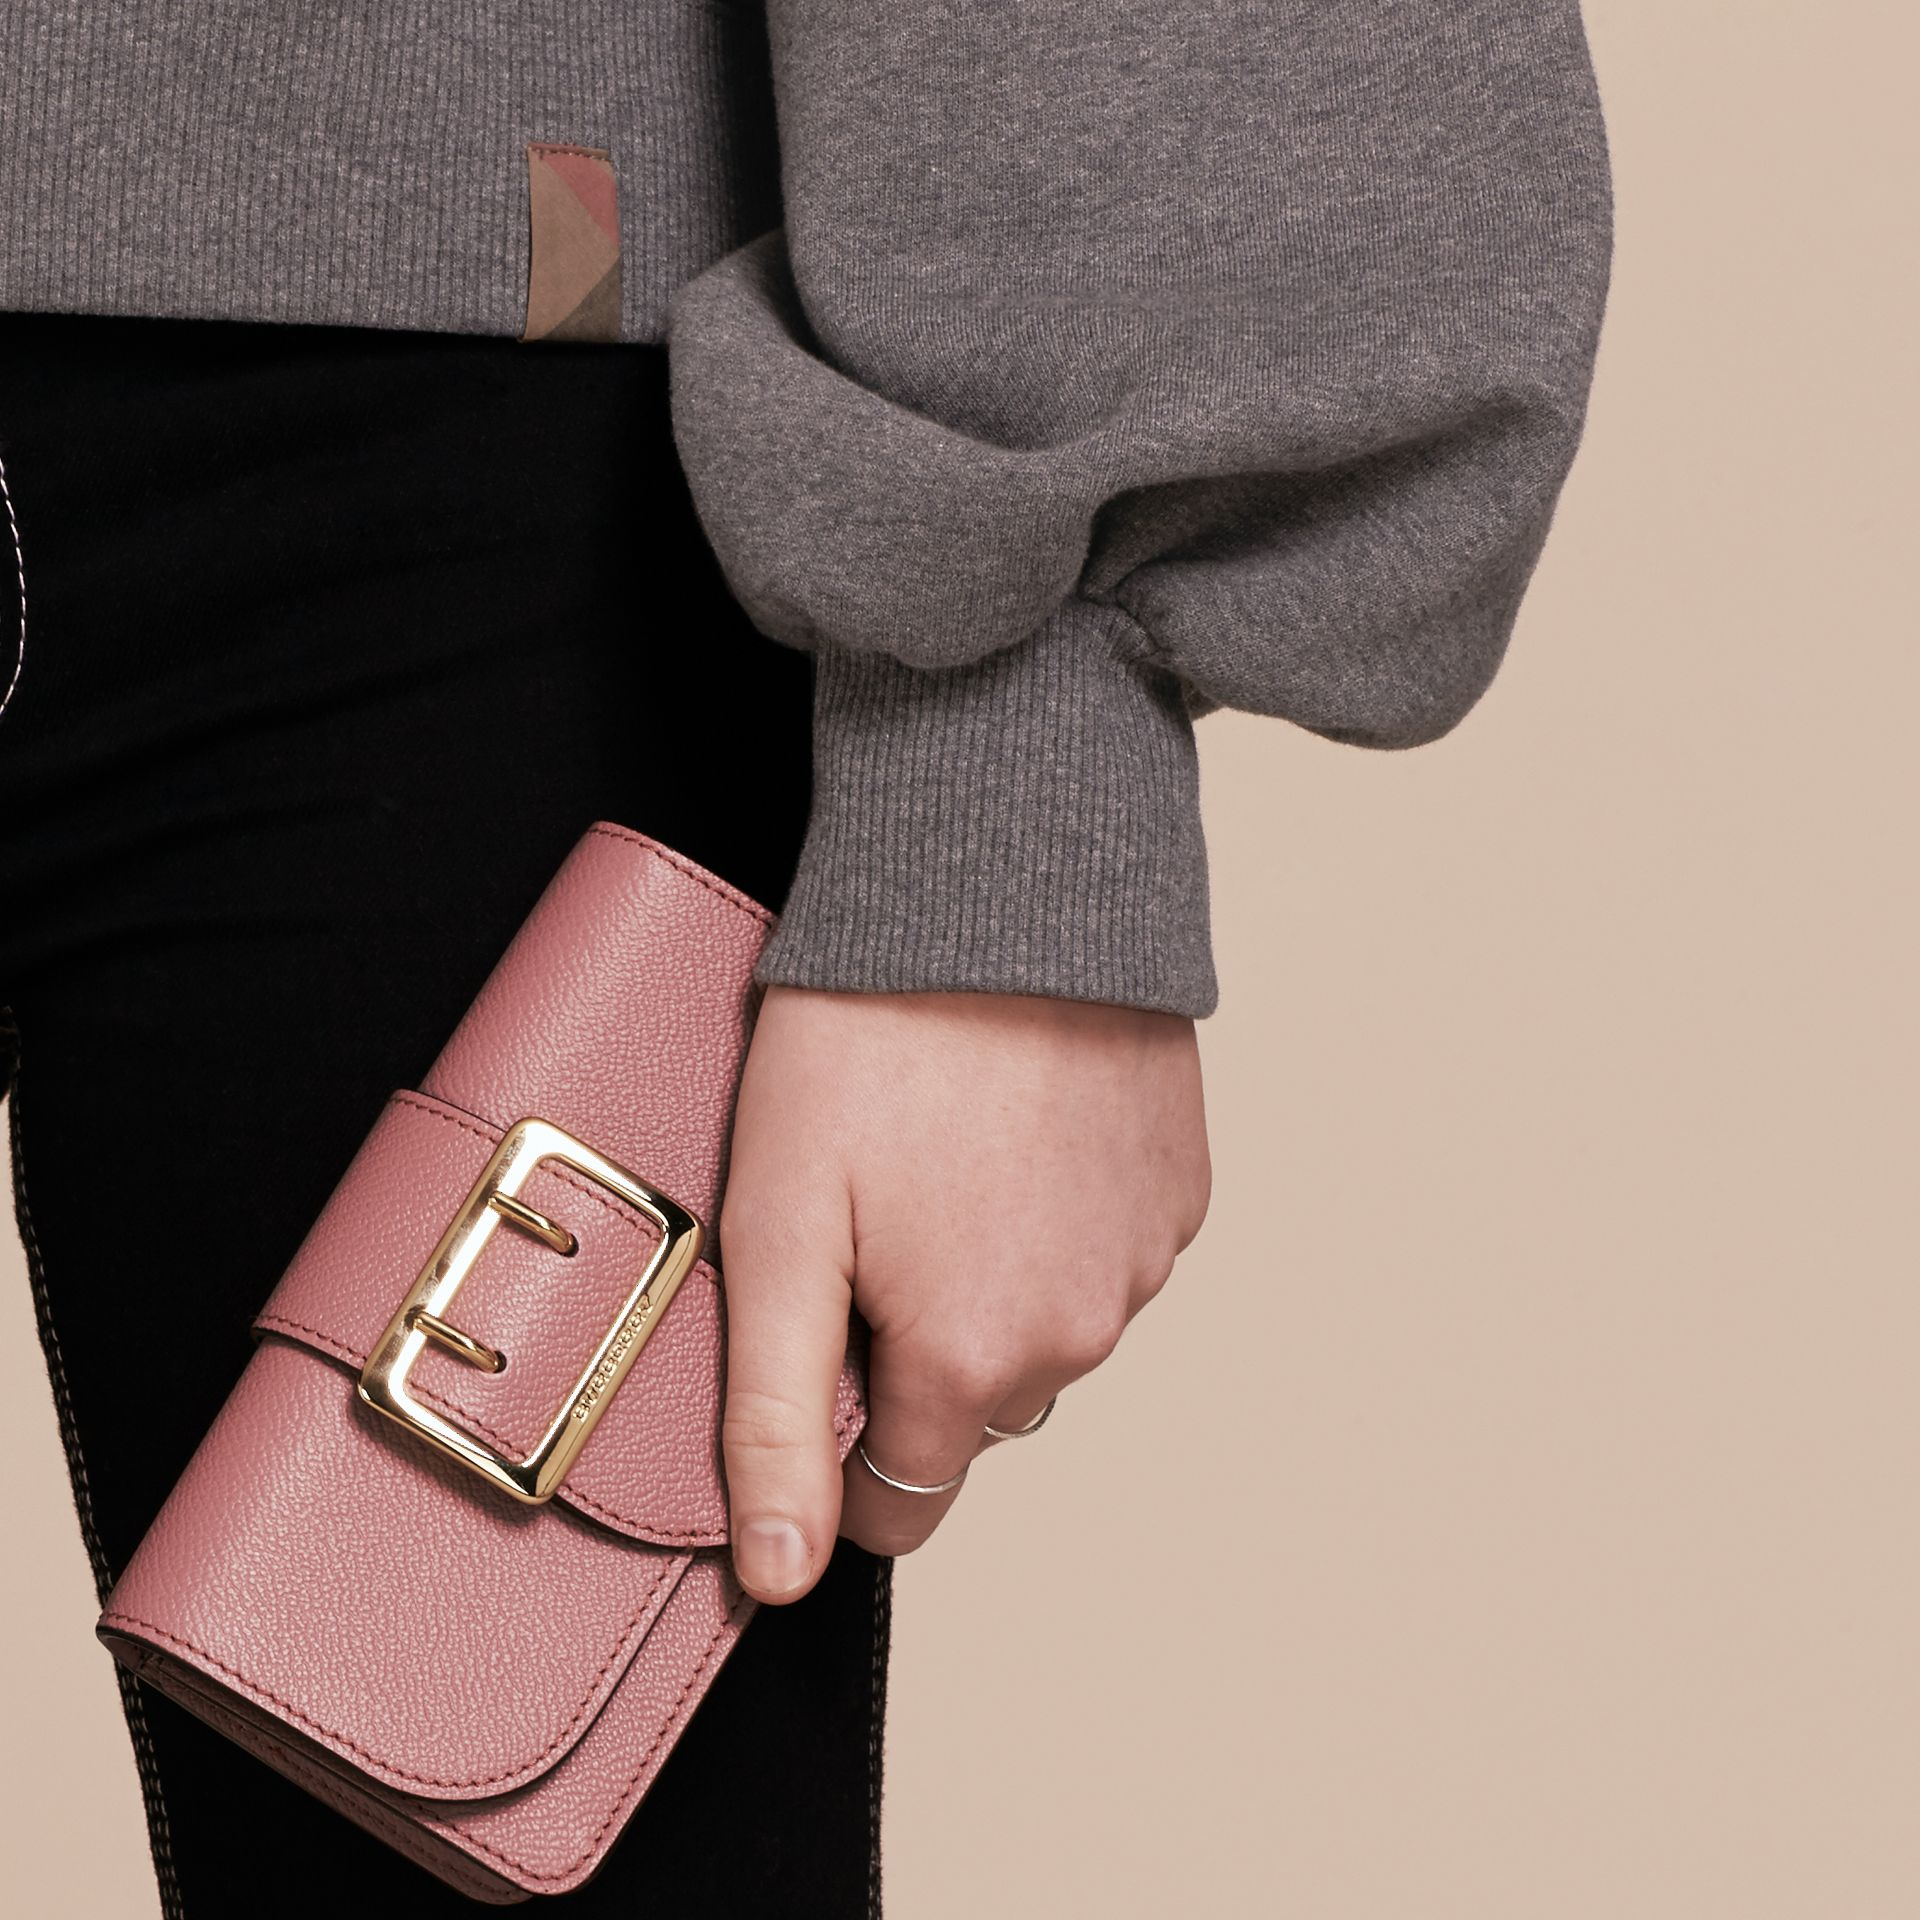 The Mini Buckle Bag in Grainy Leather in Dusty Pink - Women | Burberry Singapore - gallery image 4